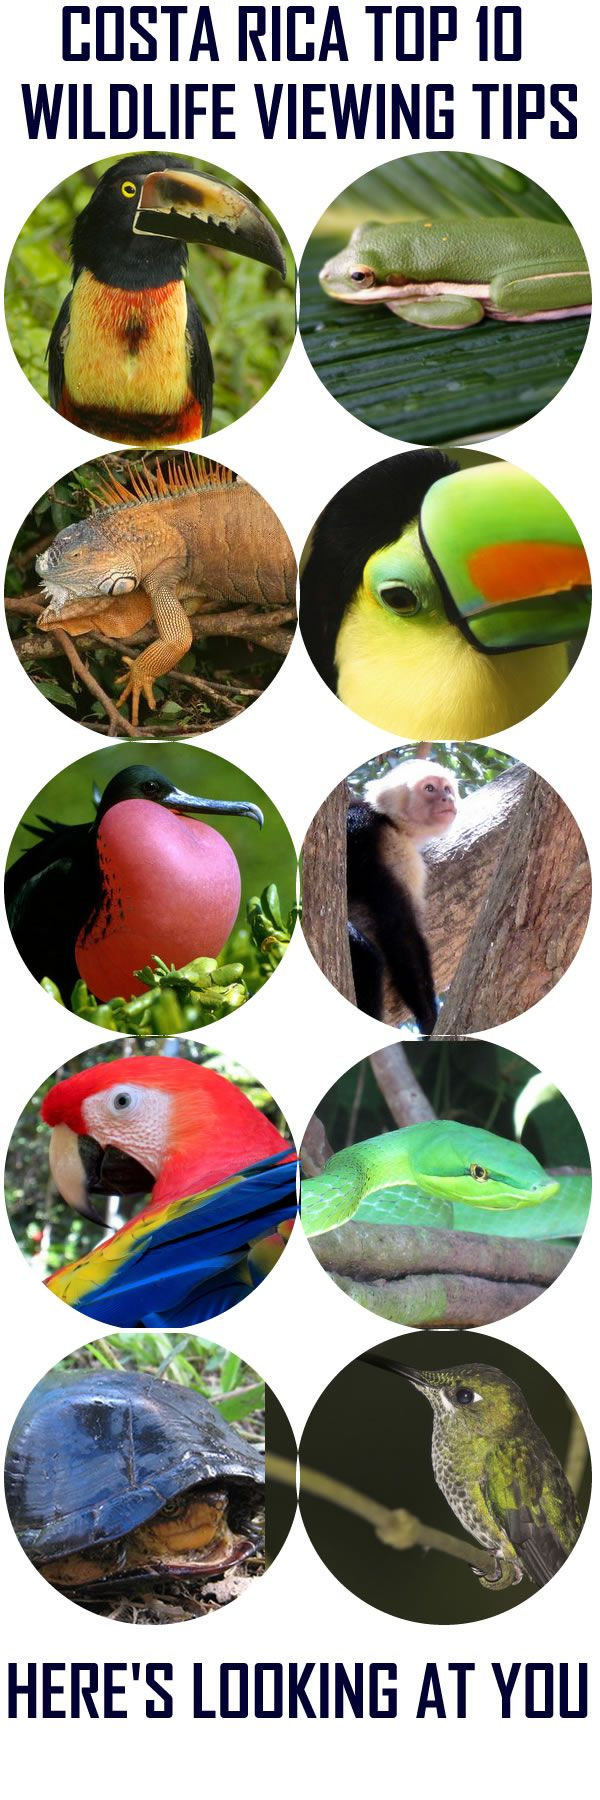 Costa Rica Wildlife Viewing Tips